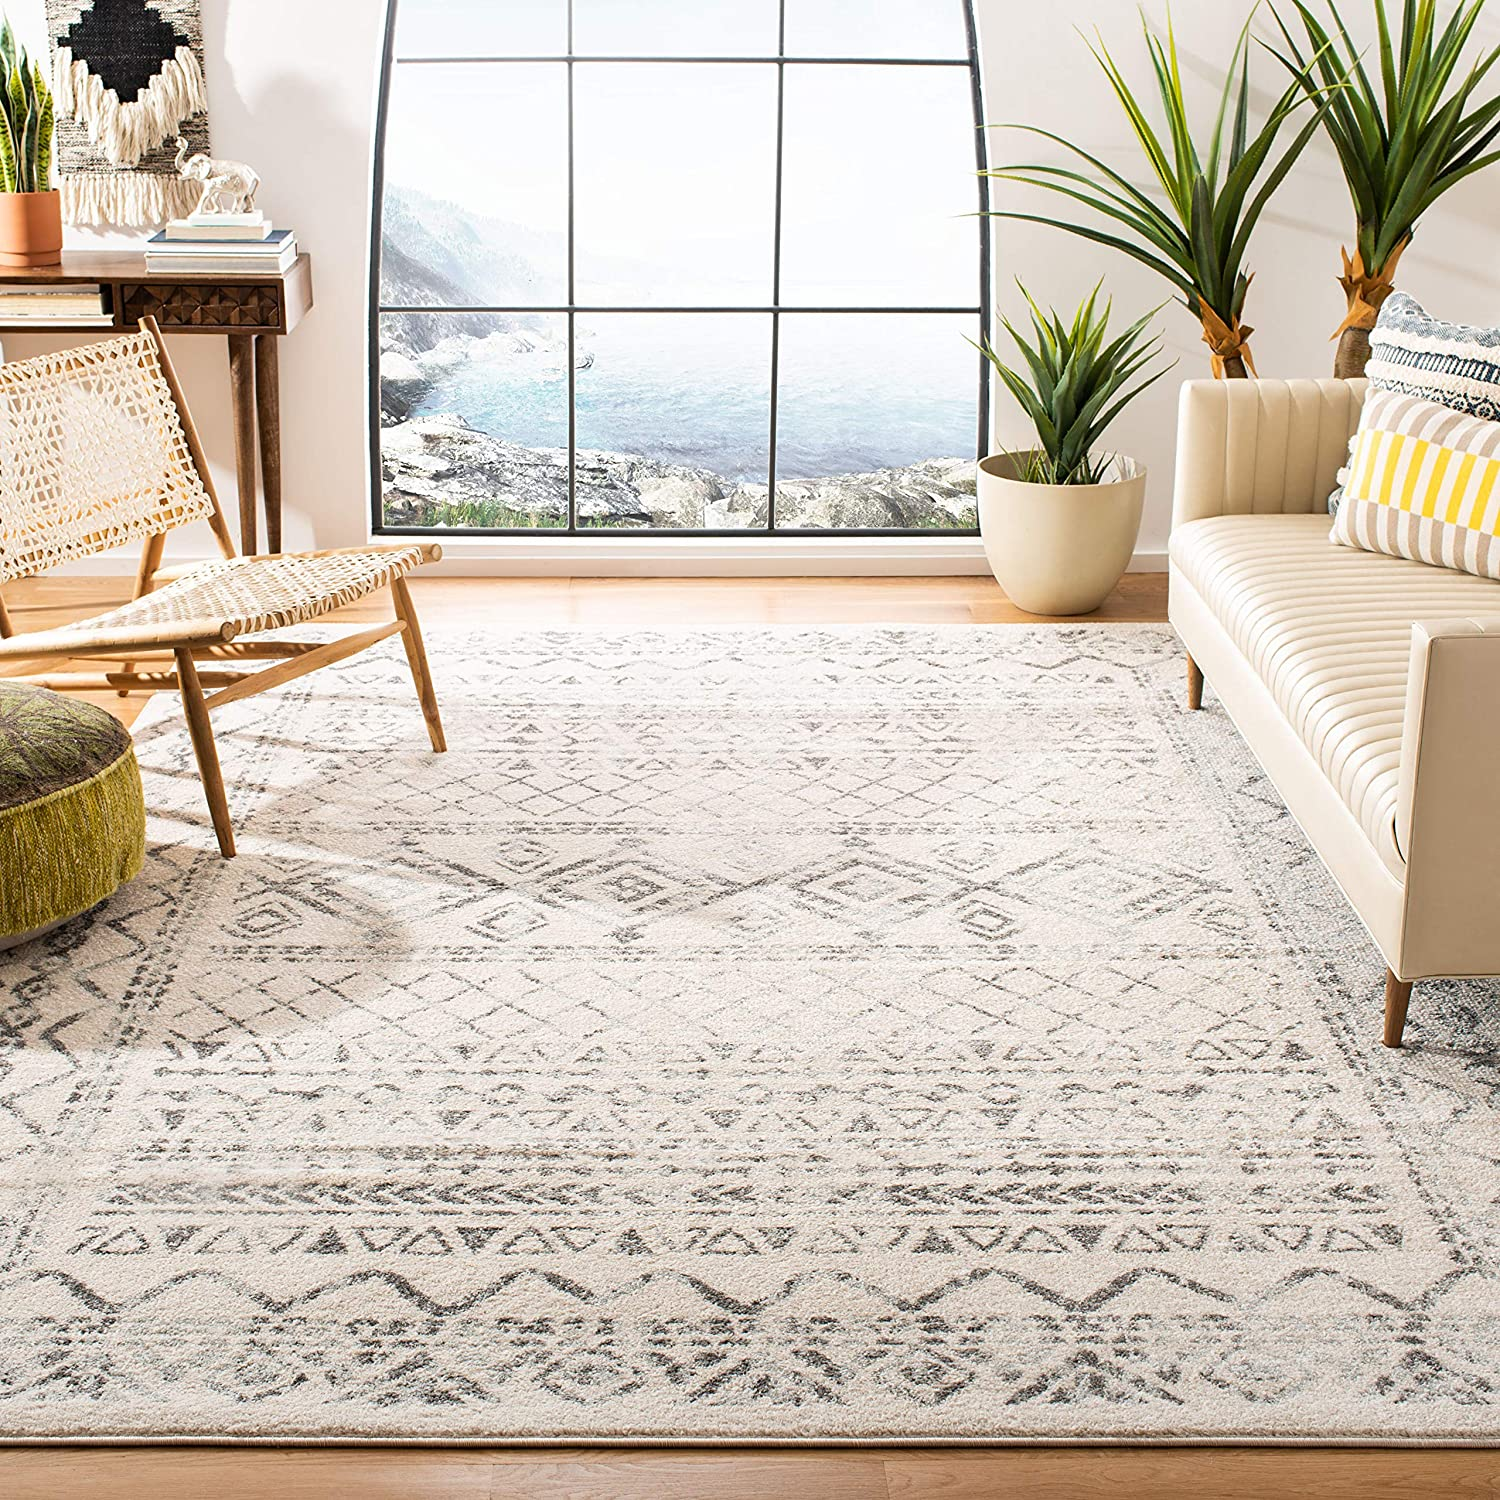 Amazon Com Safavieh Tulum Collection Tul268a Moroccan Boho Distressed Non Shedding Stain Resistant Living Room Bedroom Area Rug 9 X 12 Ivory Grey Furniture Decor